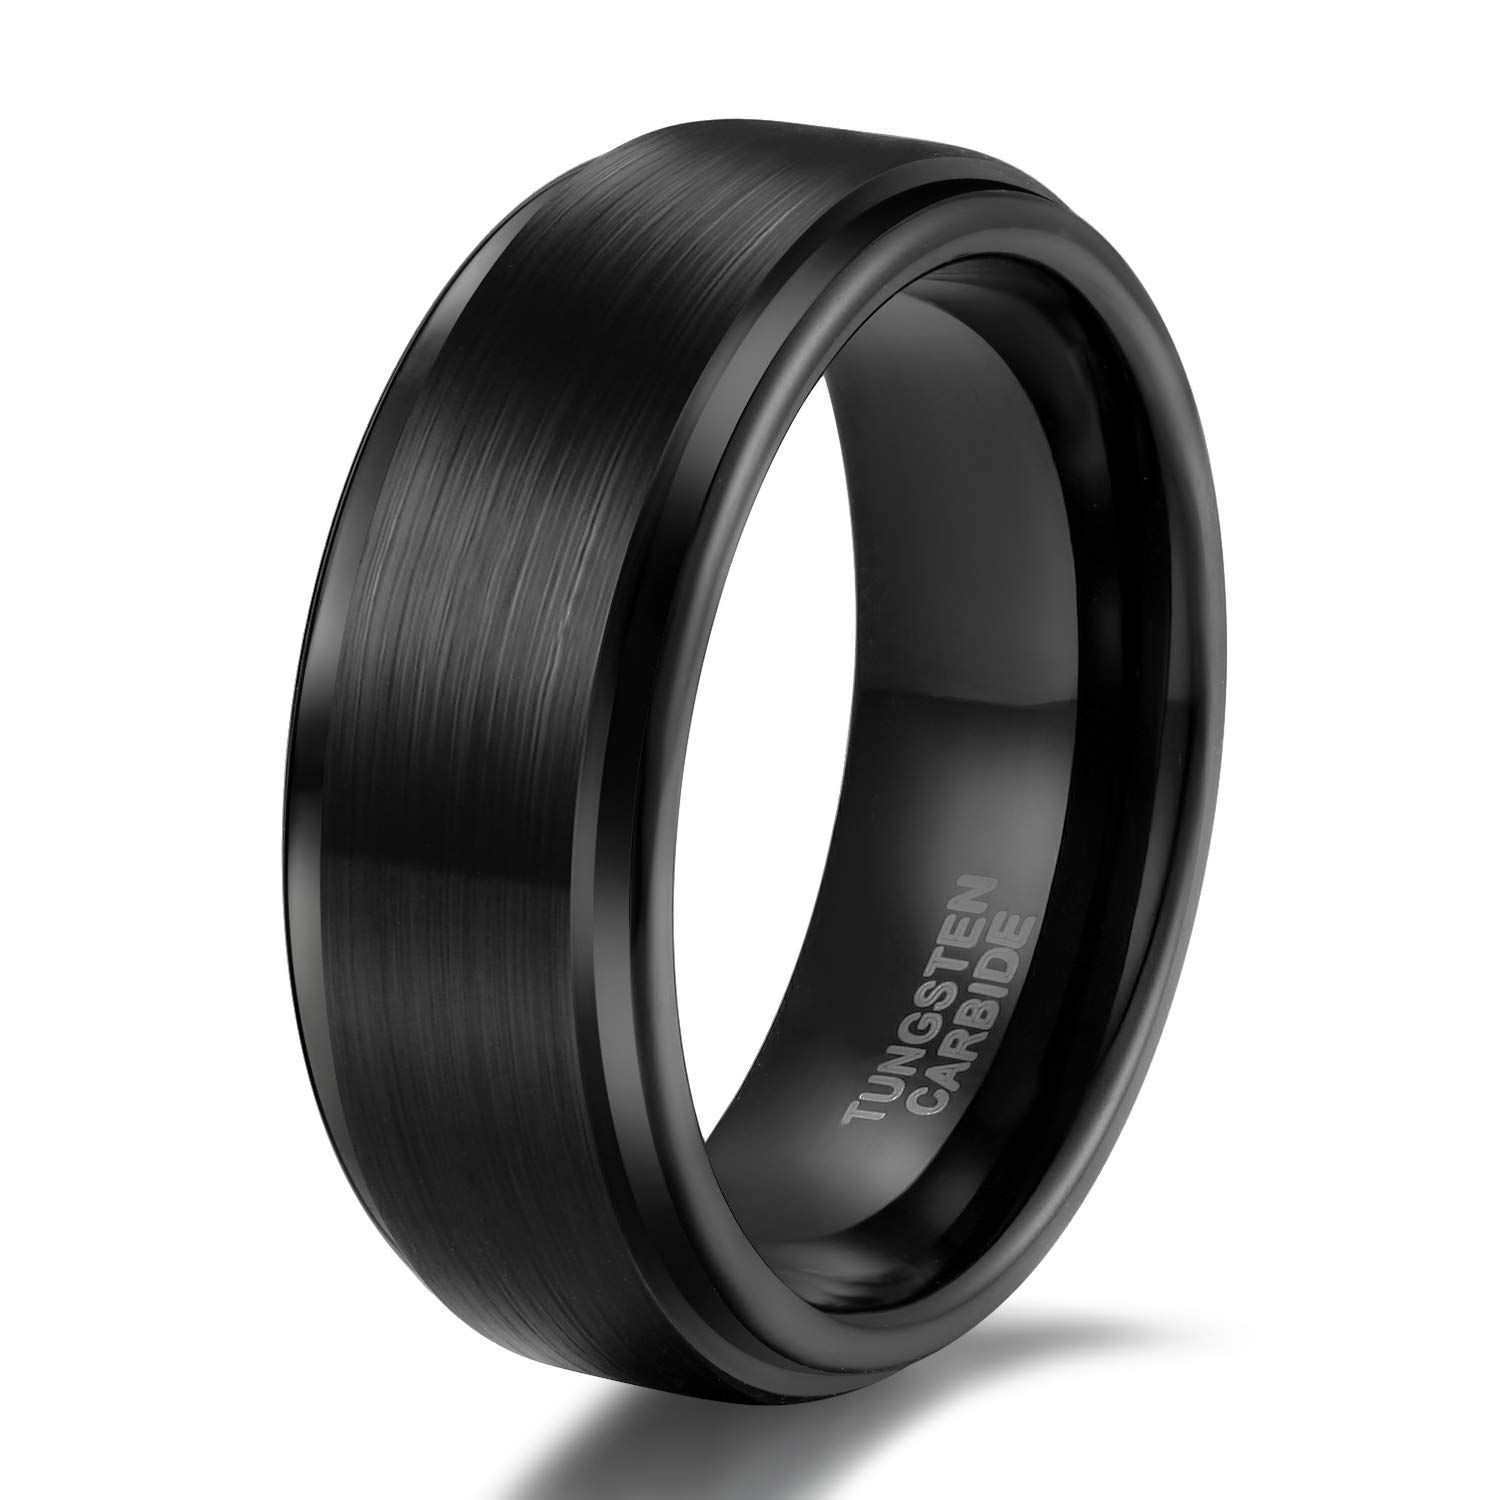 8mm Black Mens Tungsten Wedding Ring Band Brushed Stepped Edge Comfort Fit Size 6.5